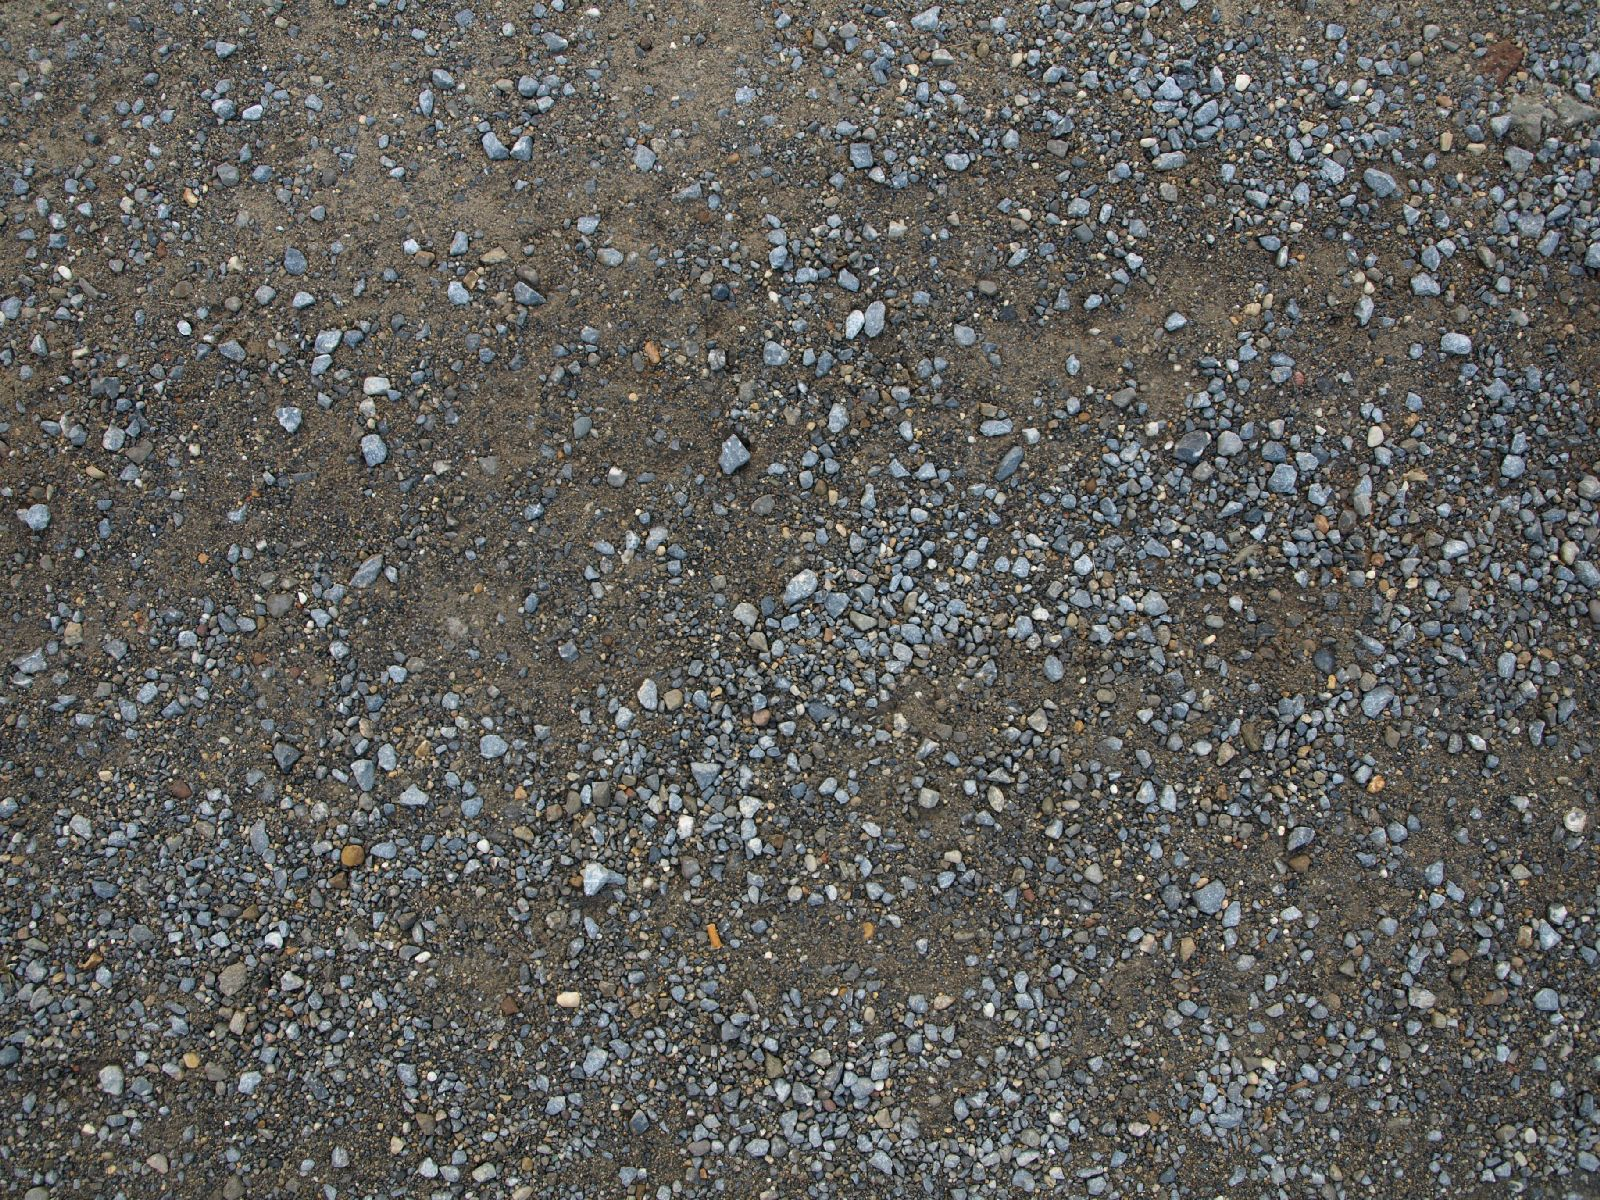 Ground-Nature_Texture_A_P8214558